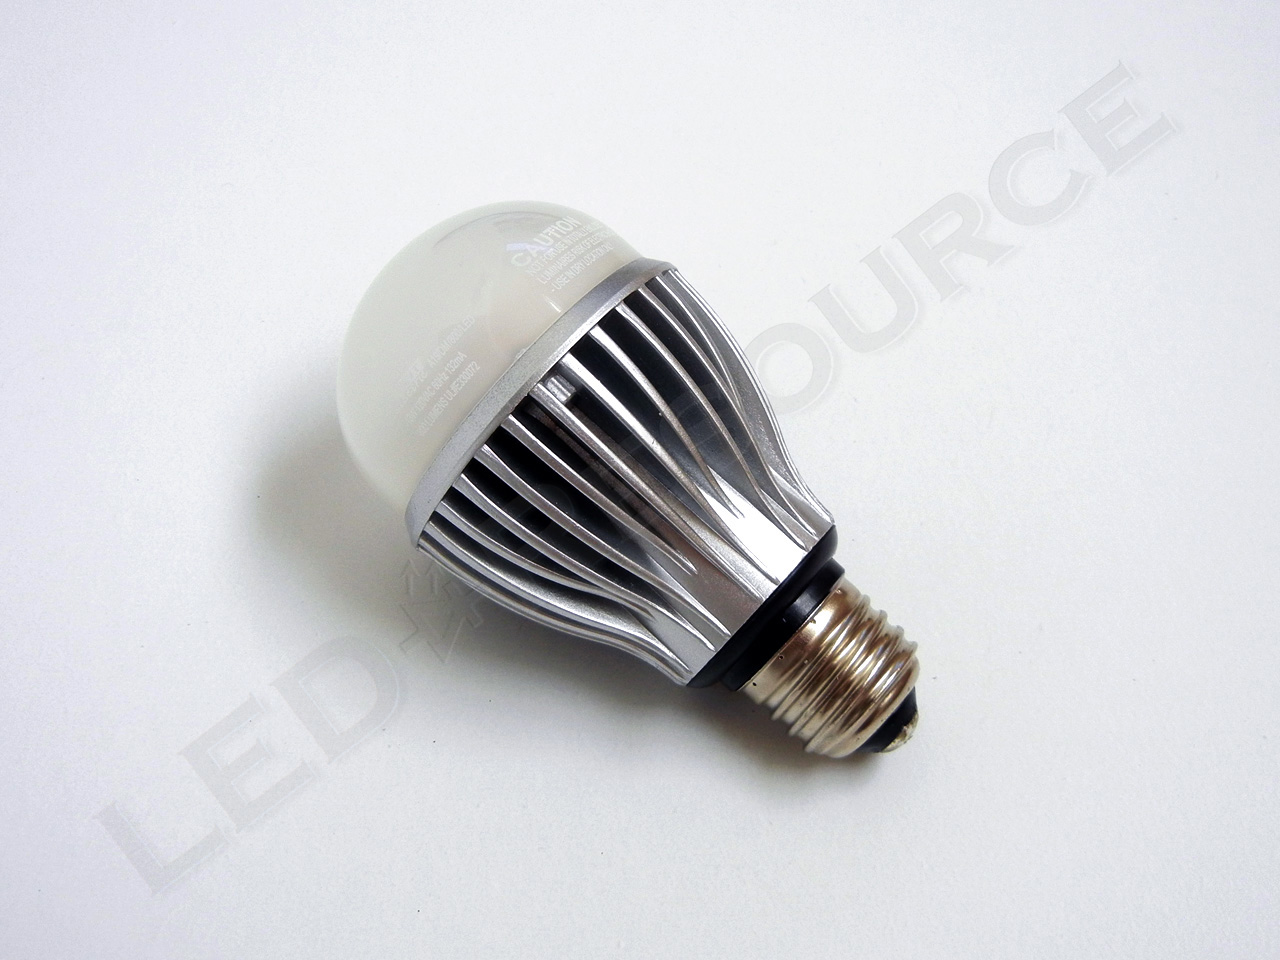 Feit Electric A19/DM/800/LED 13W LED Bulb Review - LED-Resource